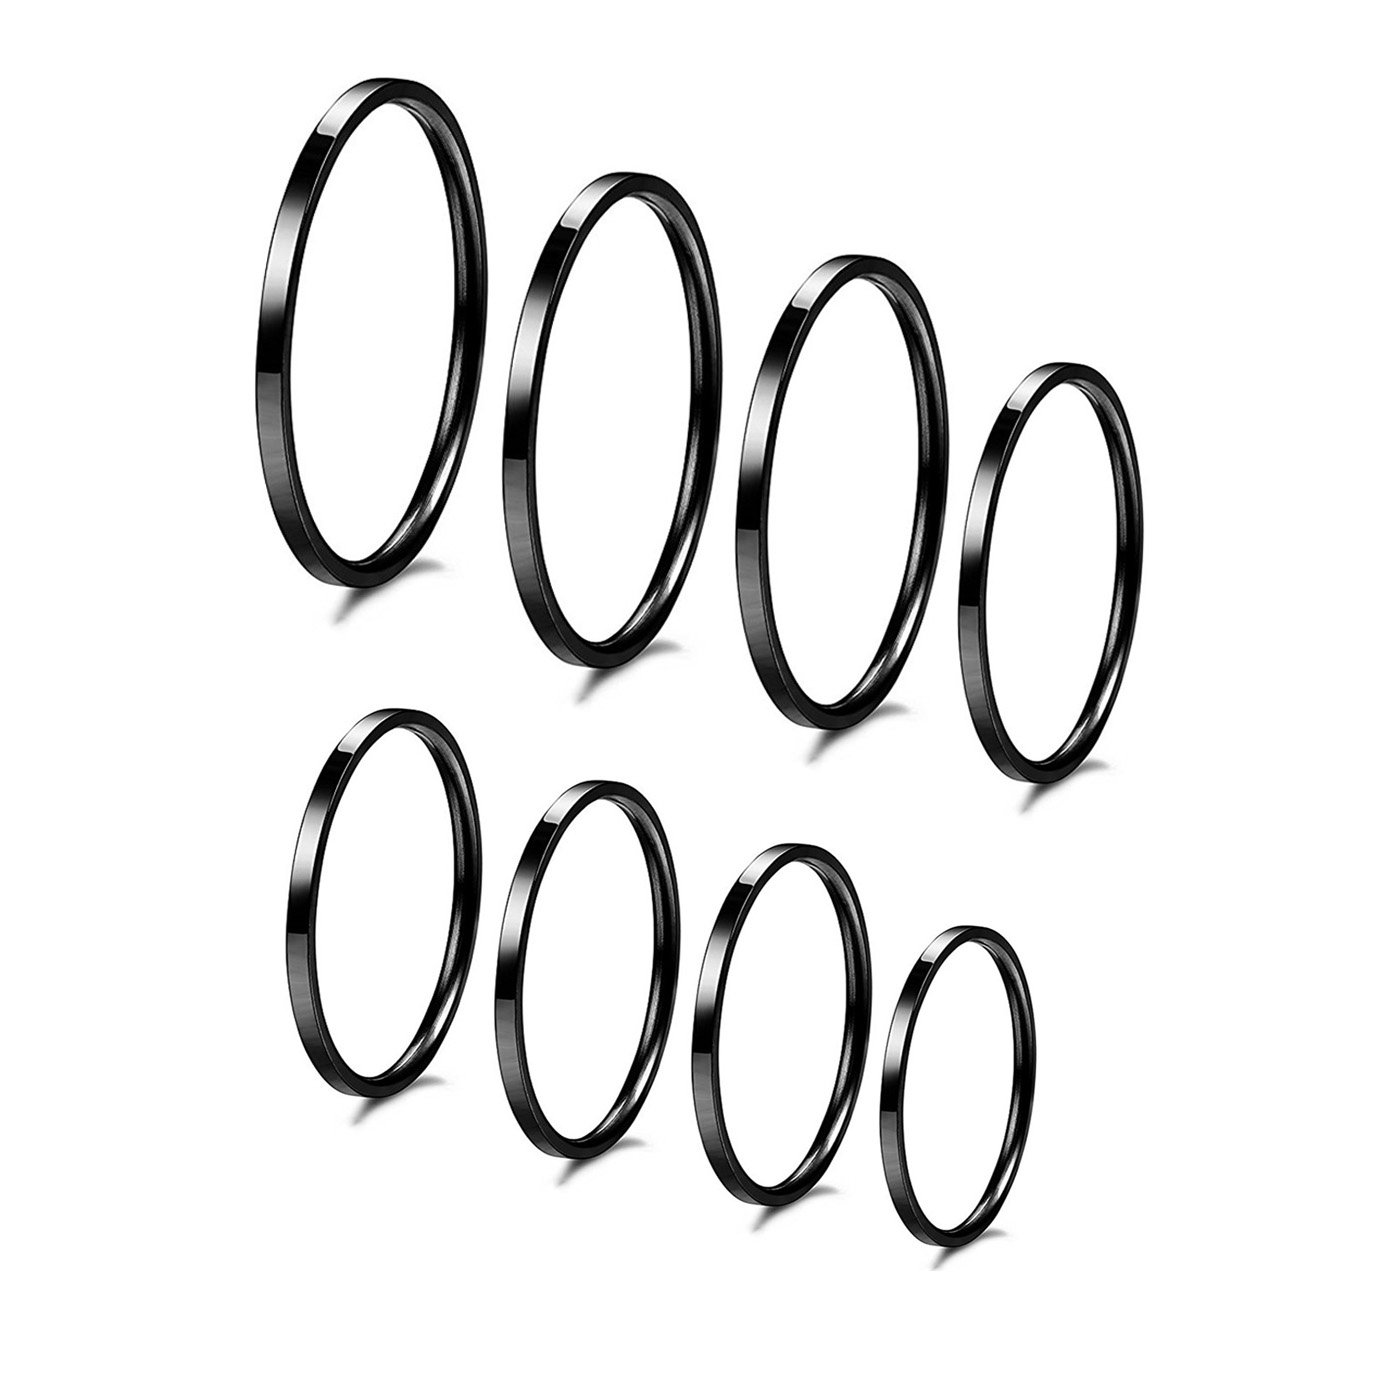 IFUAQZ 8pcs 1MM Thin Stainless Steel Knuckle Midi Stacking Rings for Women Girls Plain Band Comfort Fit Black, Size 3 to 10